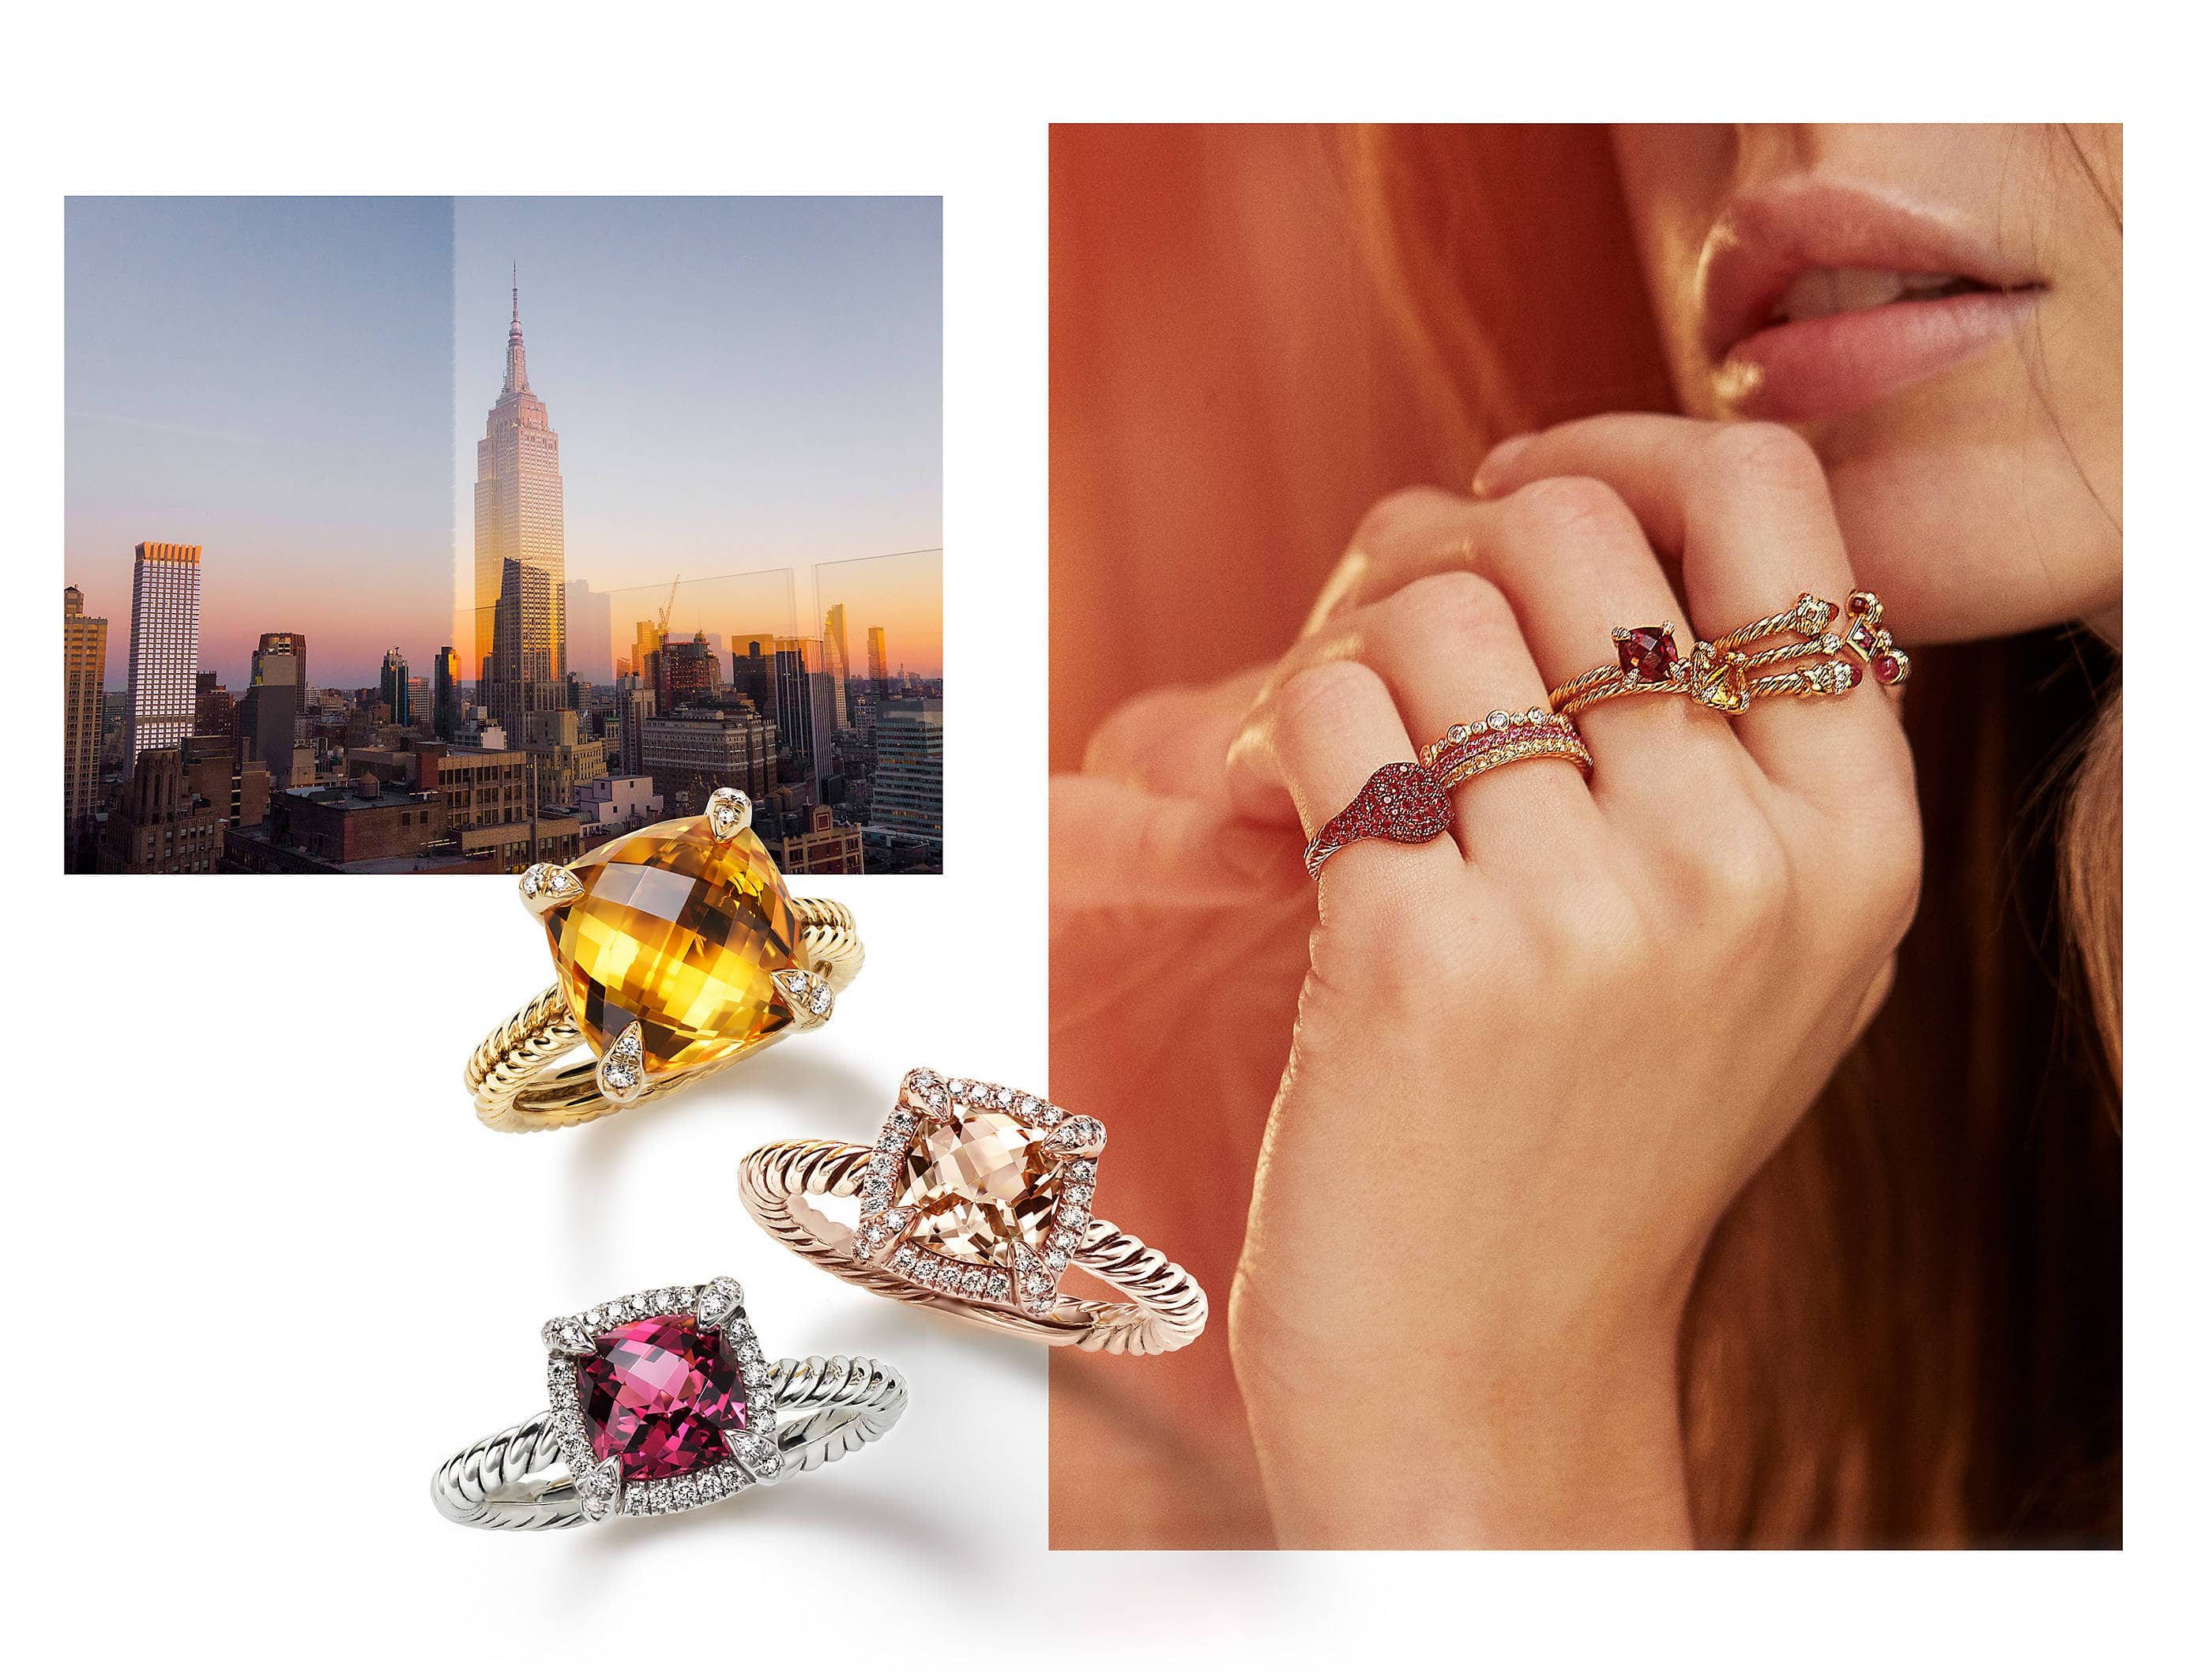 An image of David Yurman rings from the Renaissance, Chatelaine and Wedding collections along with a pinky ring. The rings are crafted from mixed metals, 18K yellow gold with or without pavé diamonds or rubies, or 18K white gold with rubies or pavé diamonds.